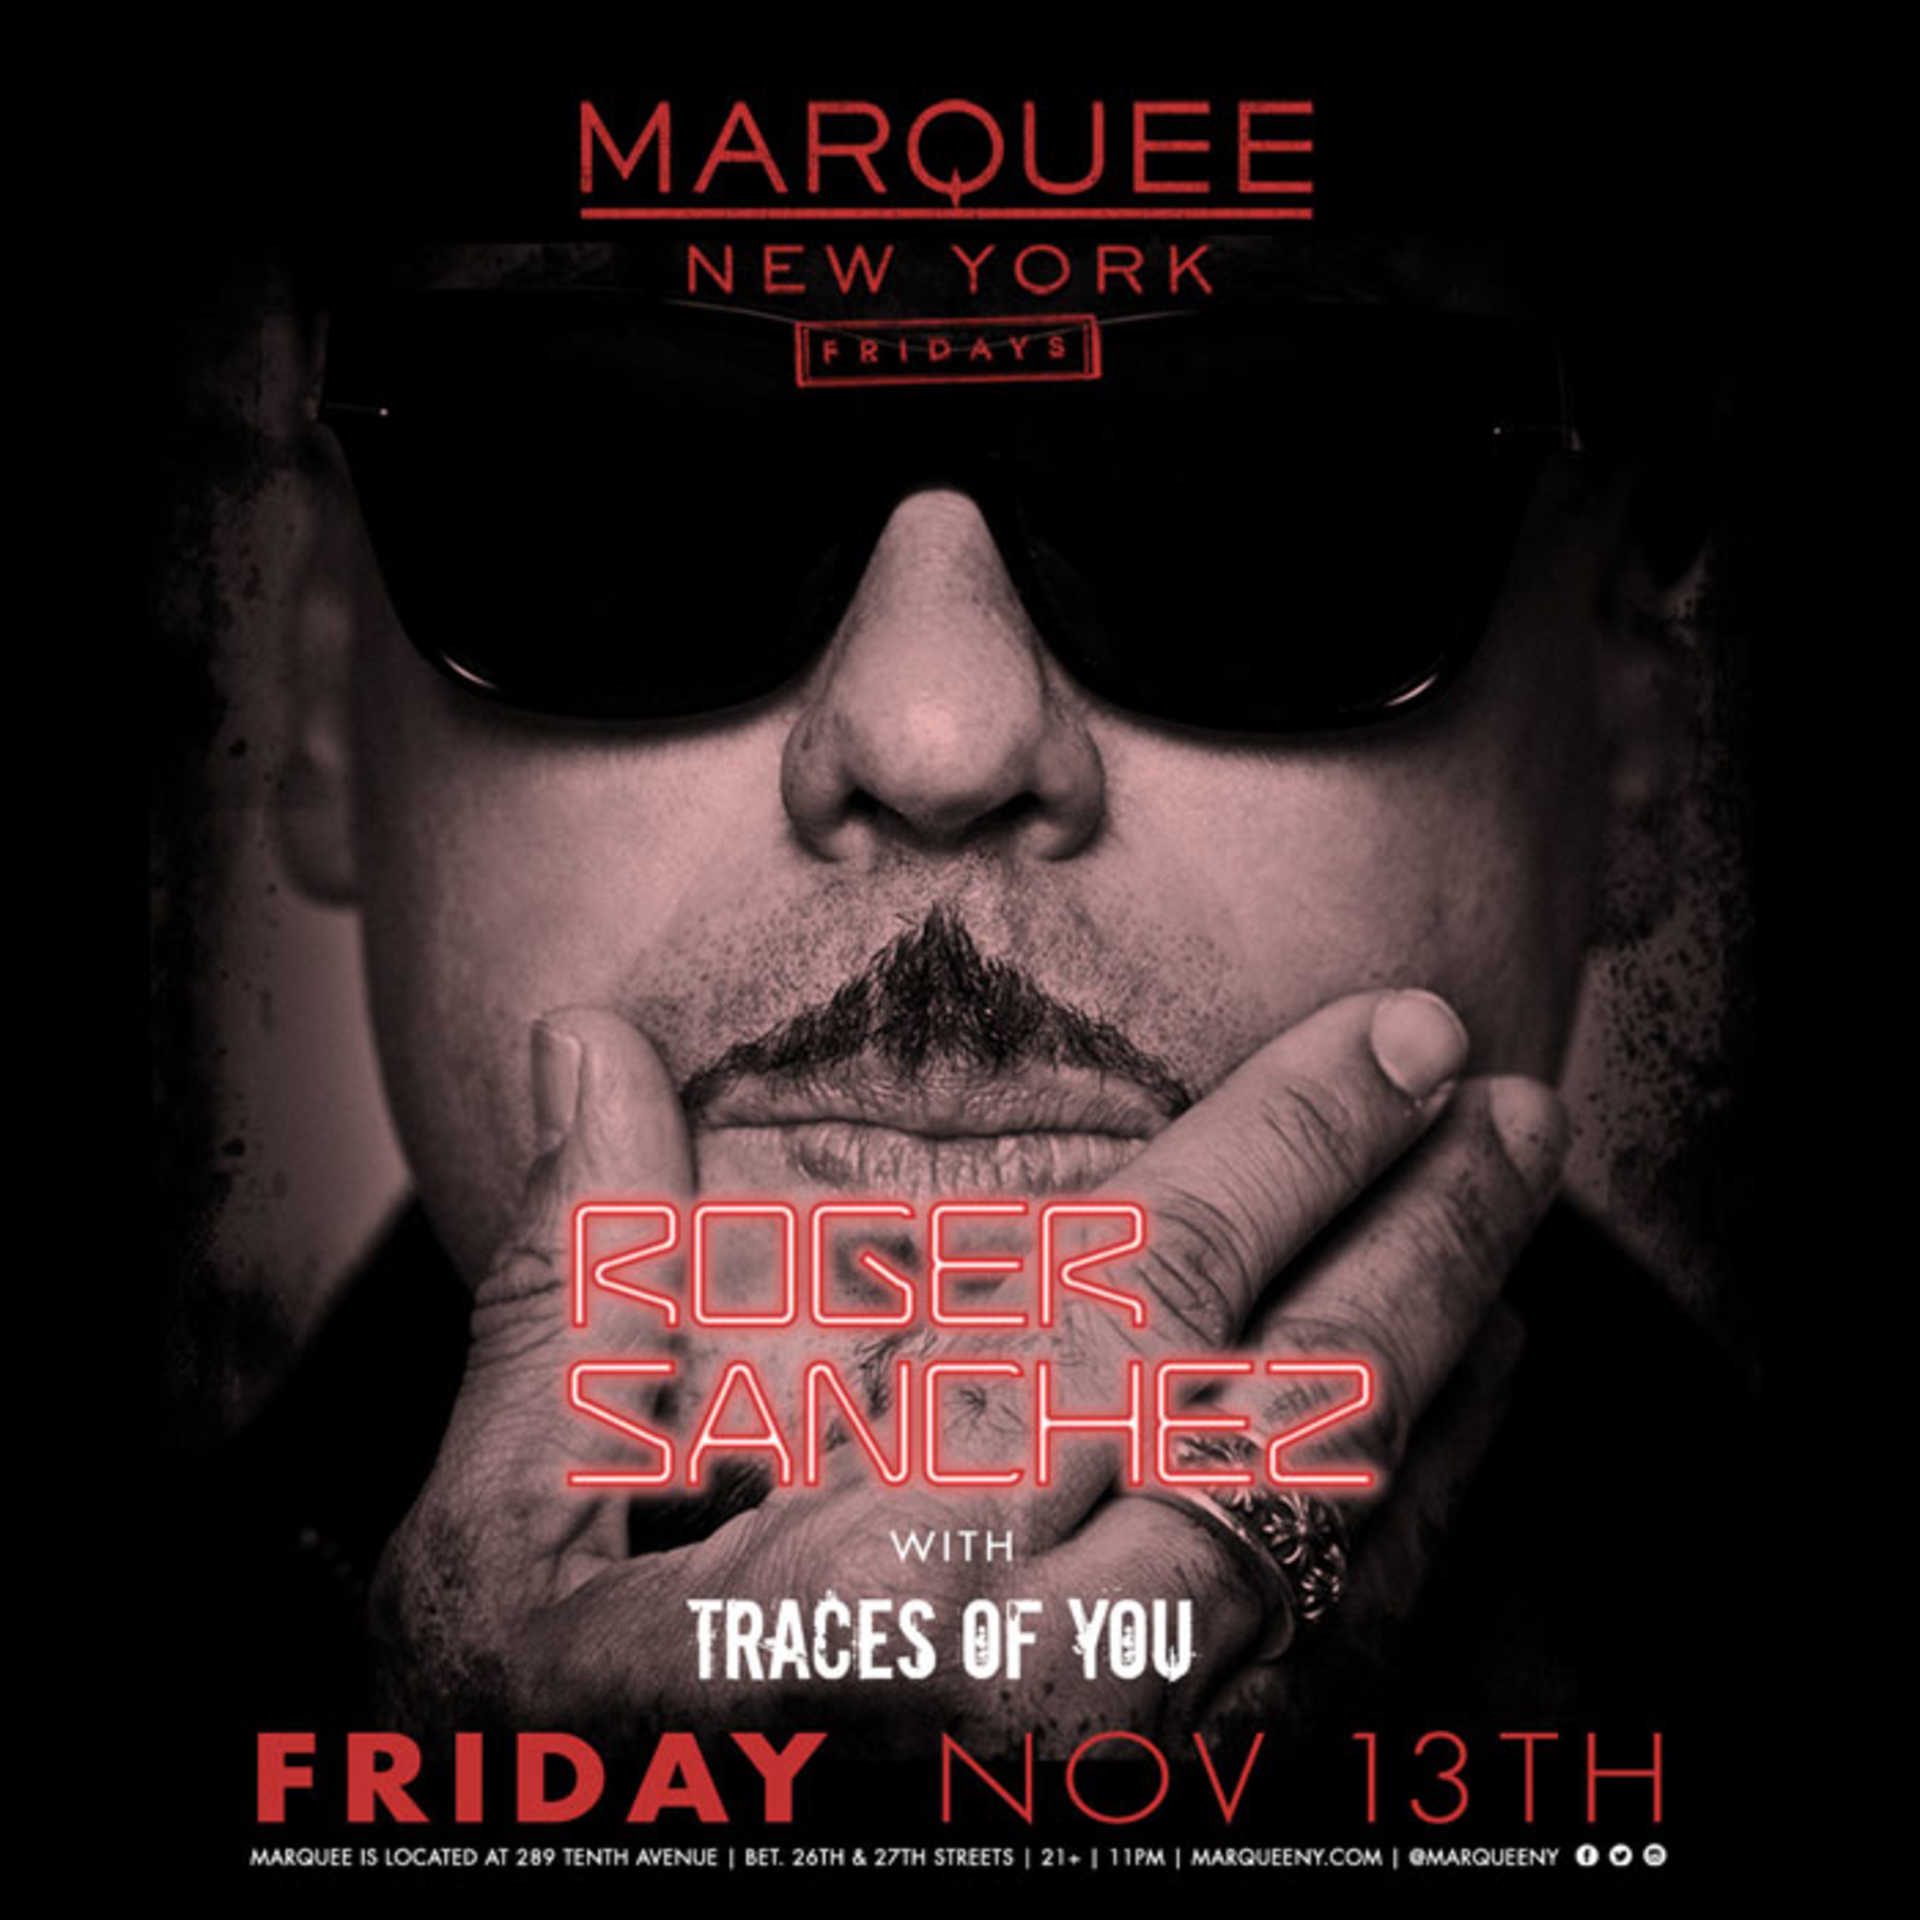 download → Roger Sanchez - Release Yourself 738 (including Live at Marquee, New York) - 08-Dec-2015